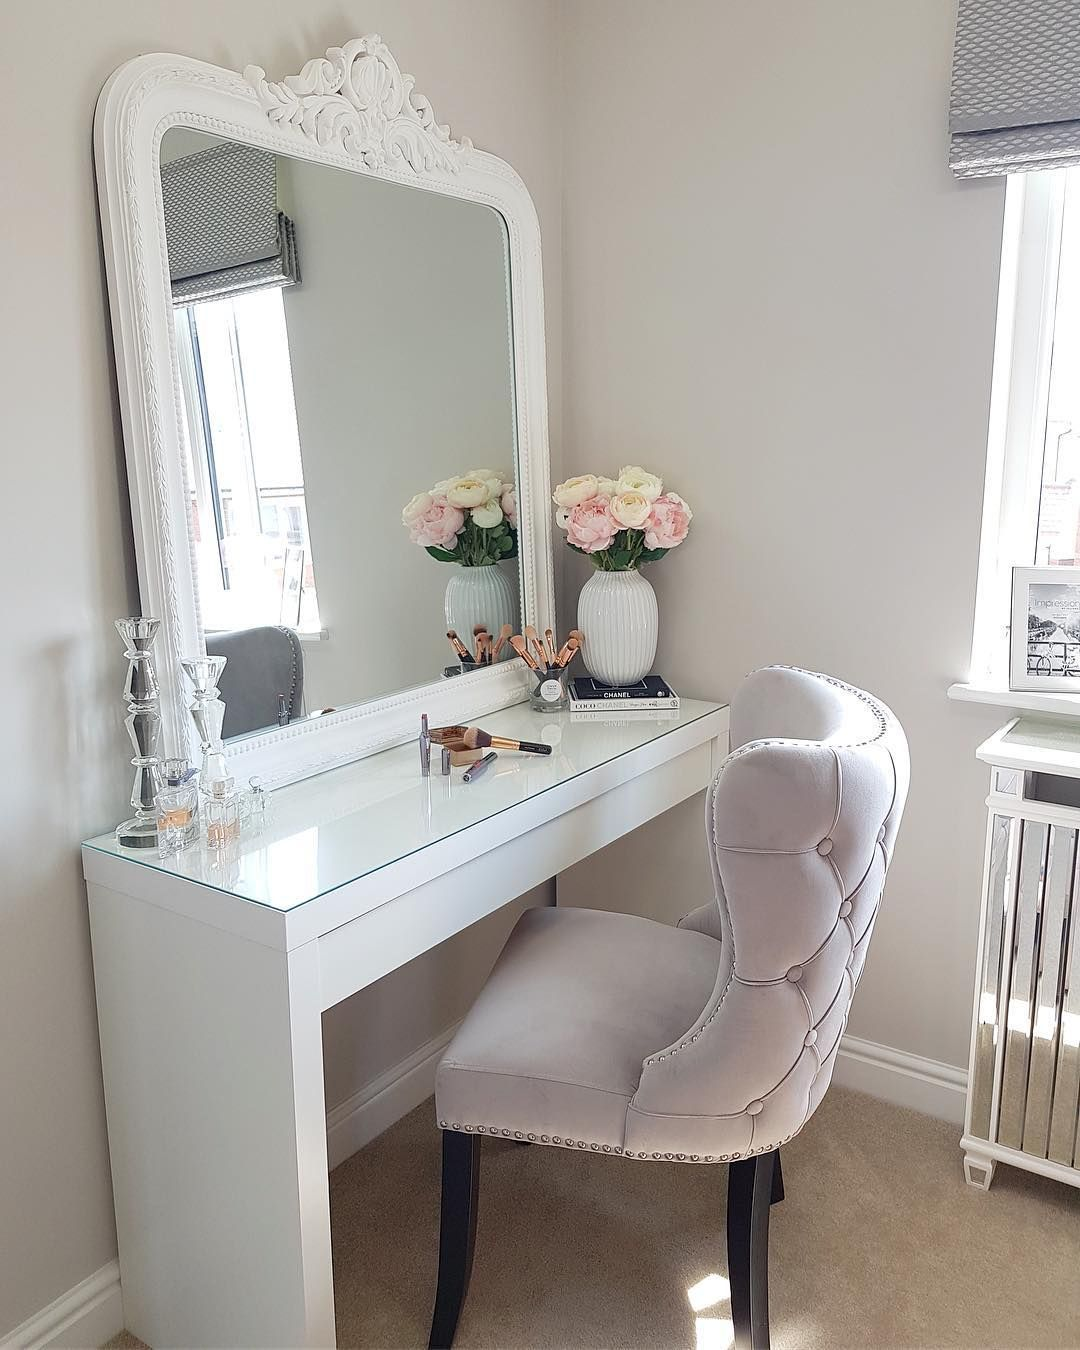 Claire On Instagram Early Post Tonight So I Can Watch The Footy I Just Had To Show You My Dressing Table With Chair Dressing Room Design Dressing Room Decor